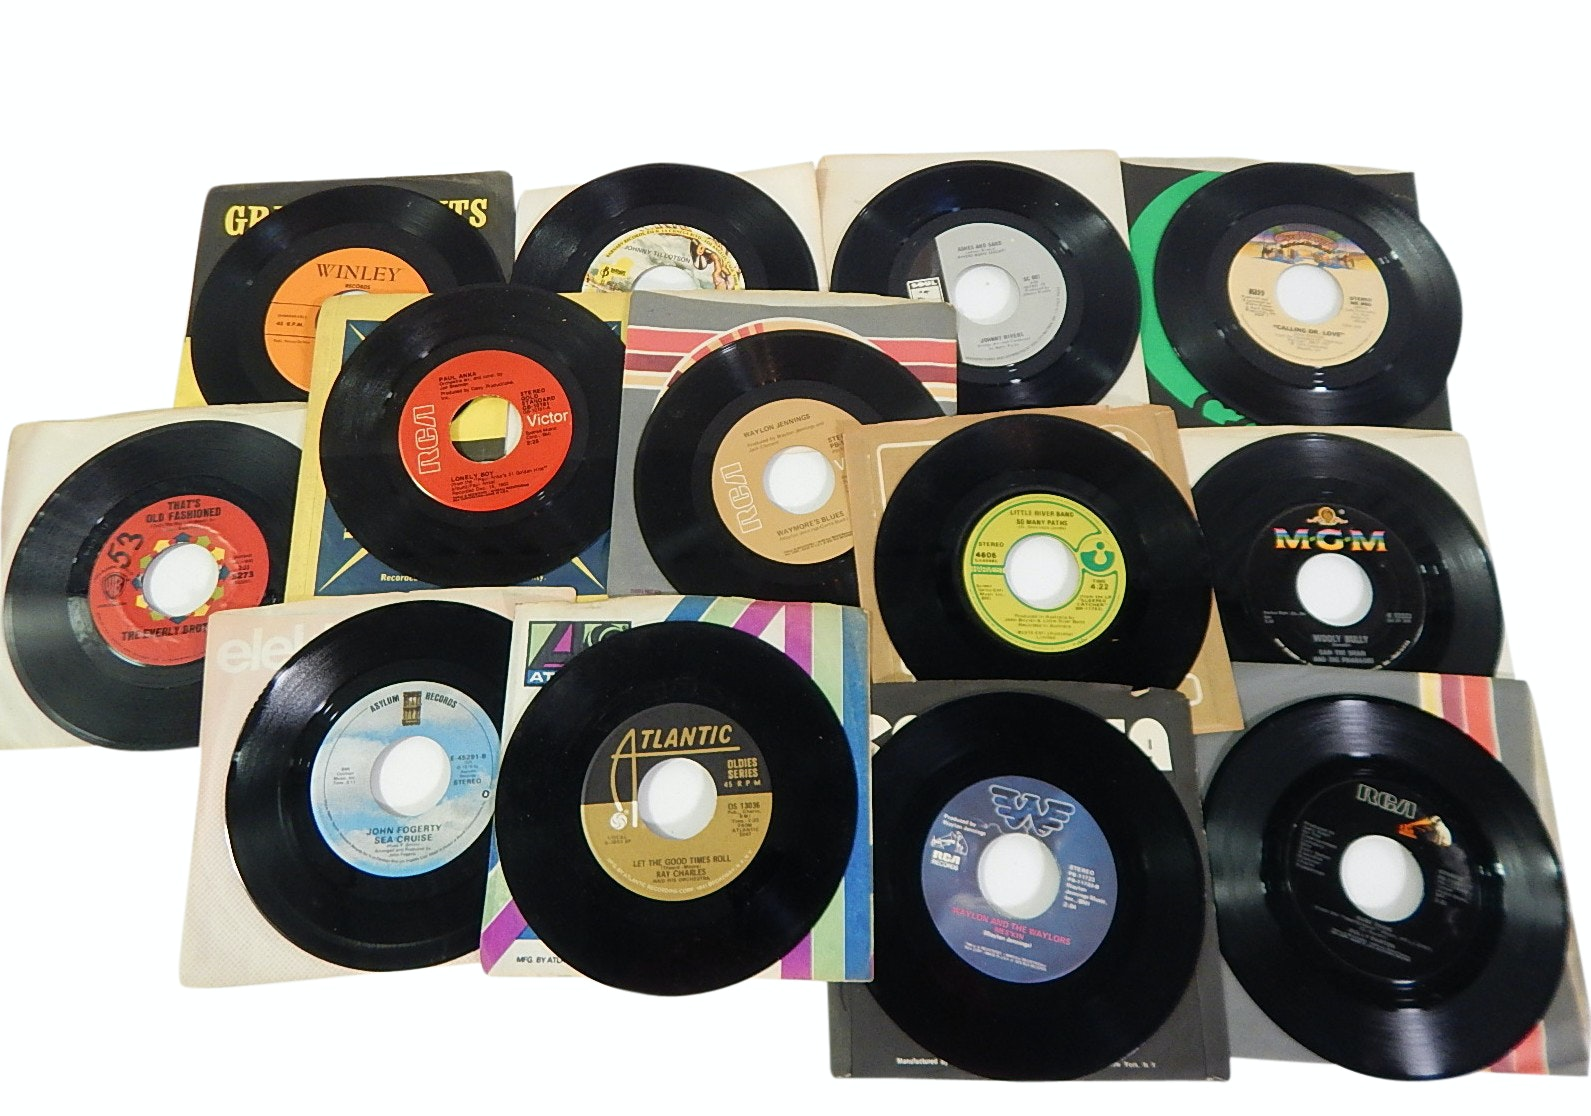 Collection of 1970s 45 RPM Record Albums with Country, Rock, Pop - Ray Charles